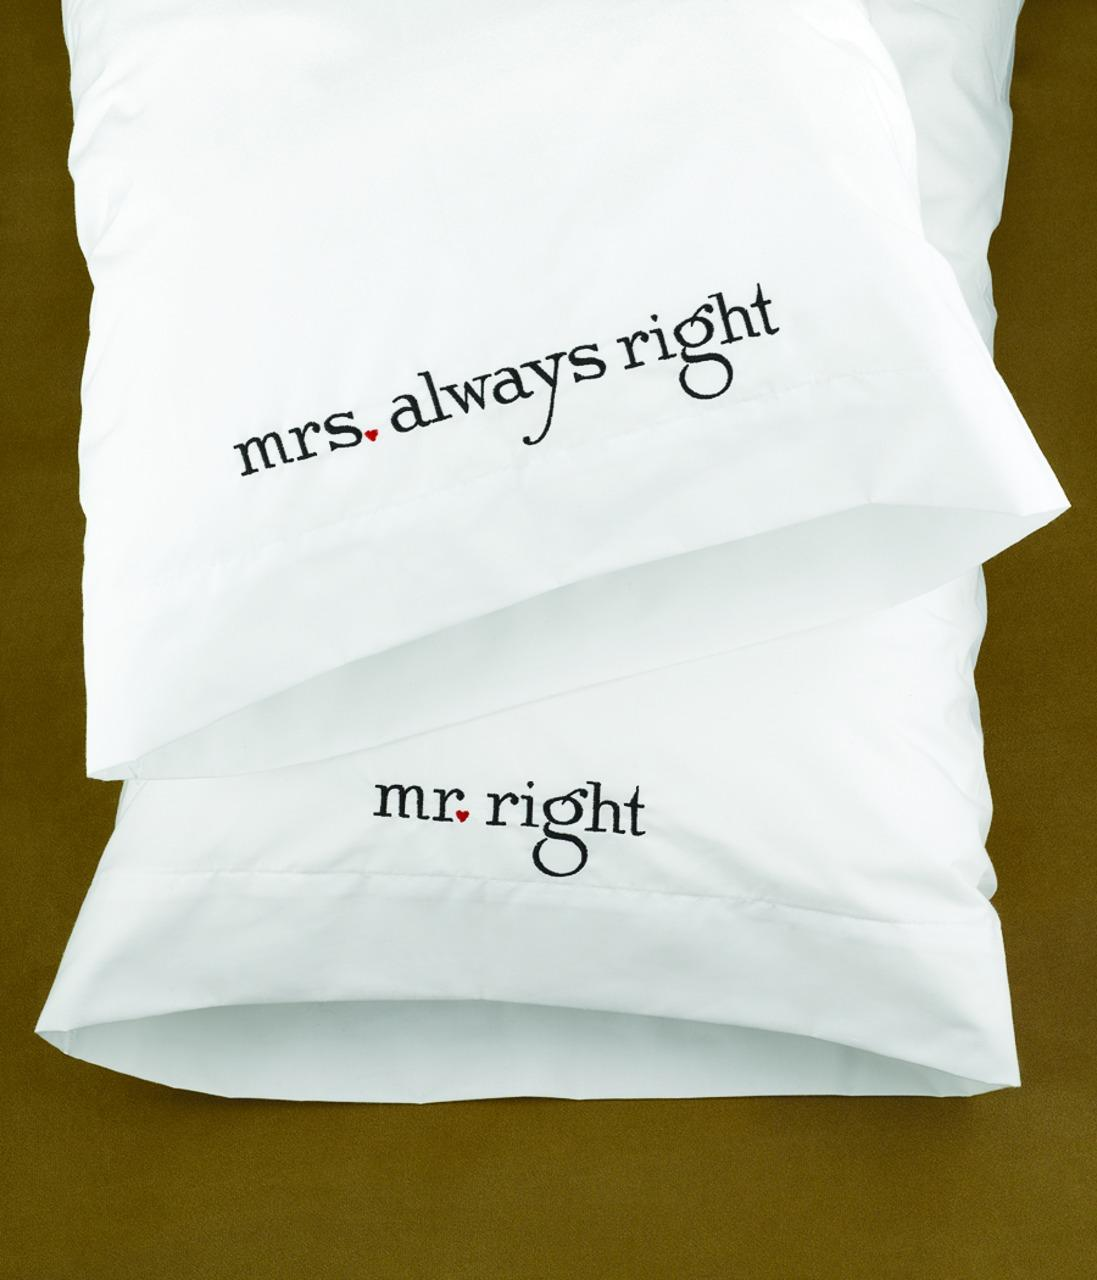 Wedding Gifts Mr And Mrs: Mr And Mrs Right Pillow Case Wedding Gift Set